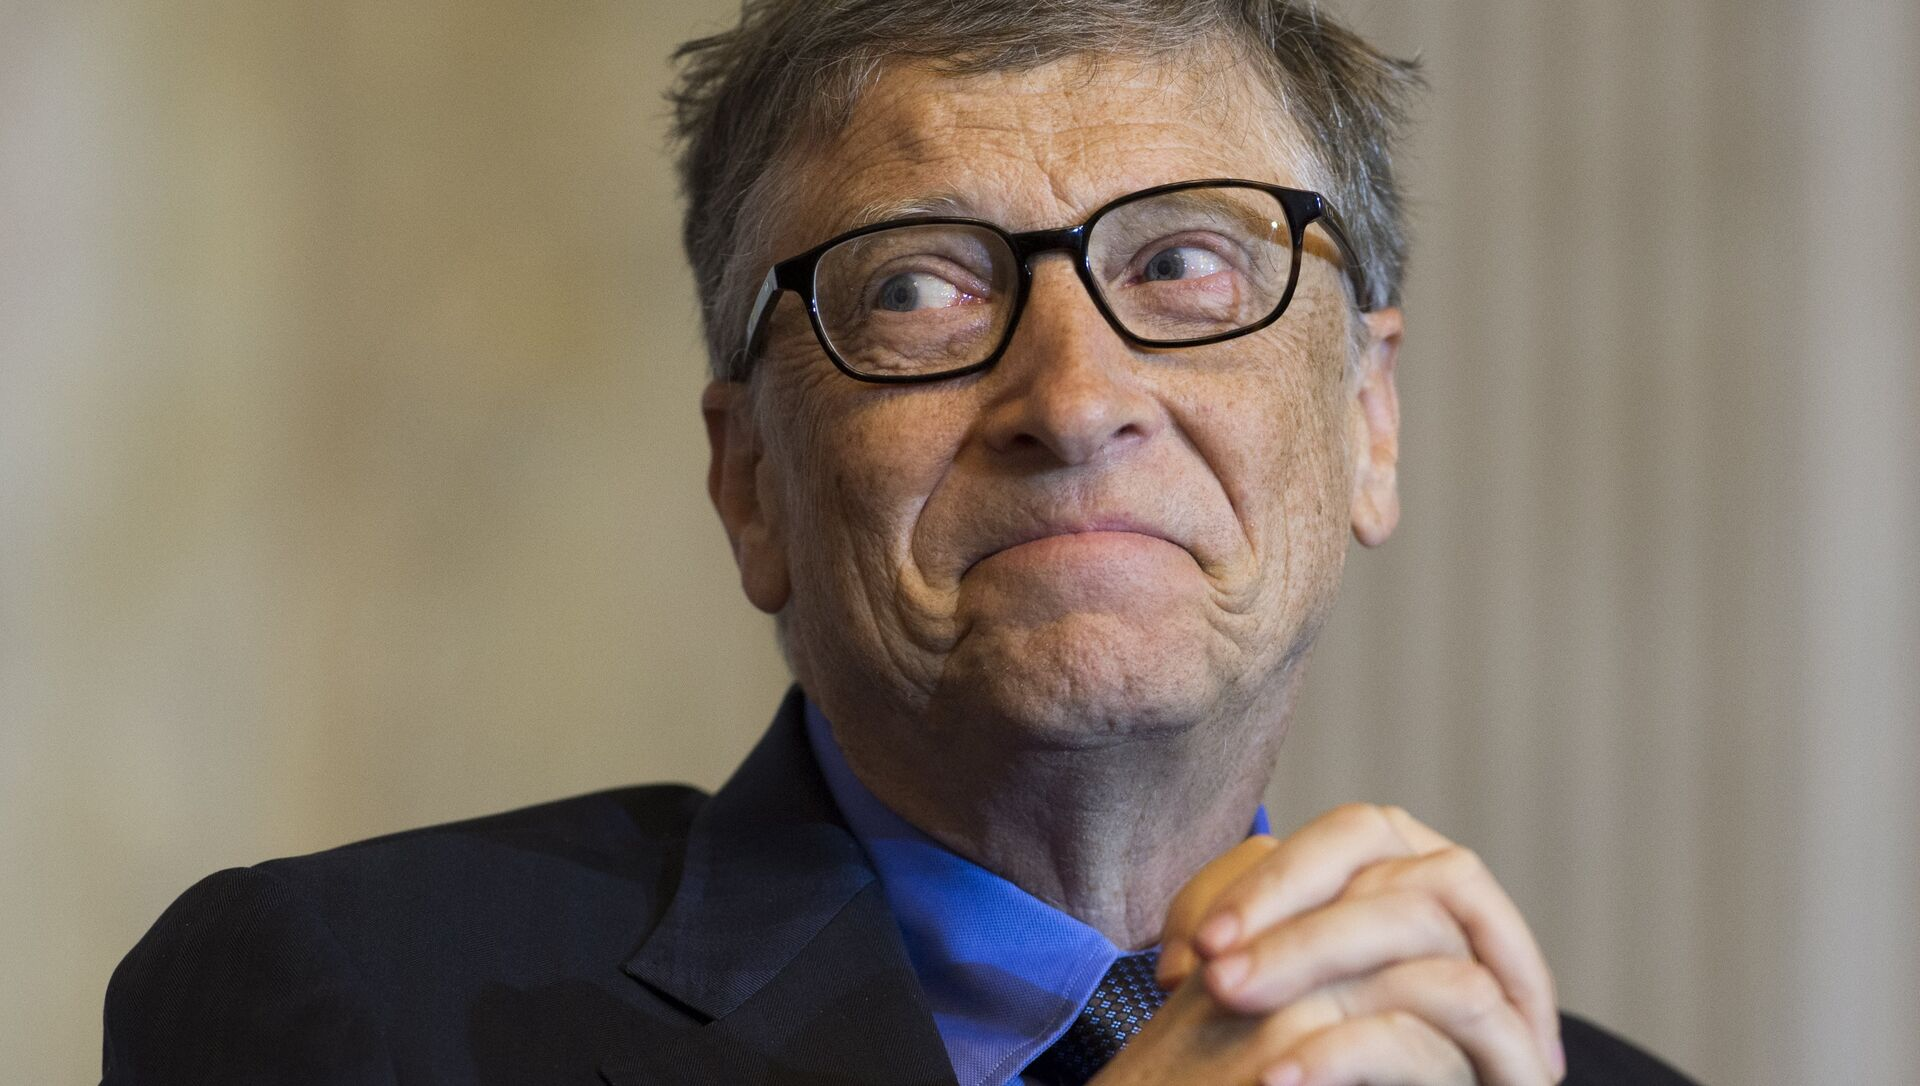 Bill Gates, co-chair of the Bill and Melinda Gates Foundation and founder of Microsoft, participates in the Financial Inclusion Forum at the Treasury Department in Washington, DC, December 1, 2015.  - Sputnik Mundo, 1920, 27.01.2021